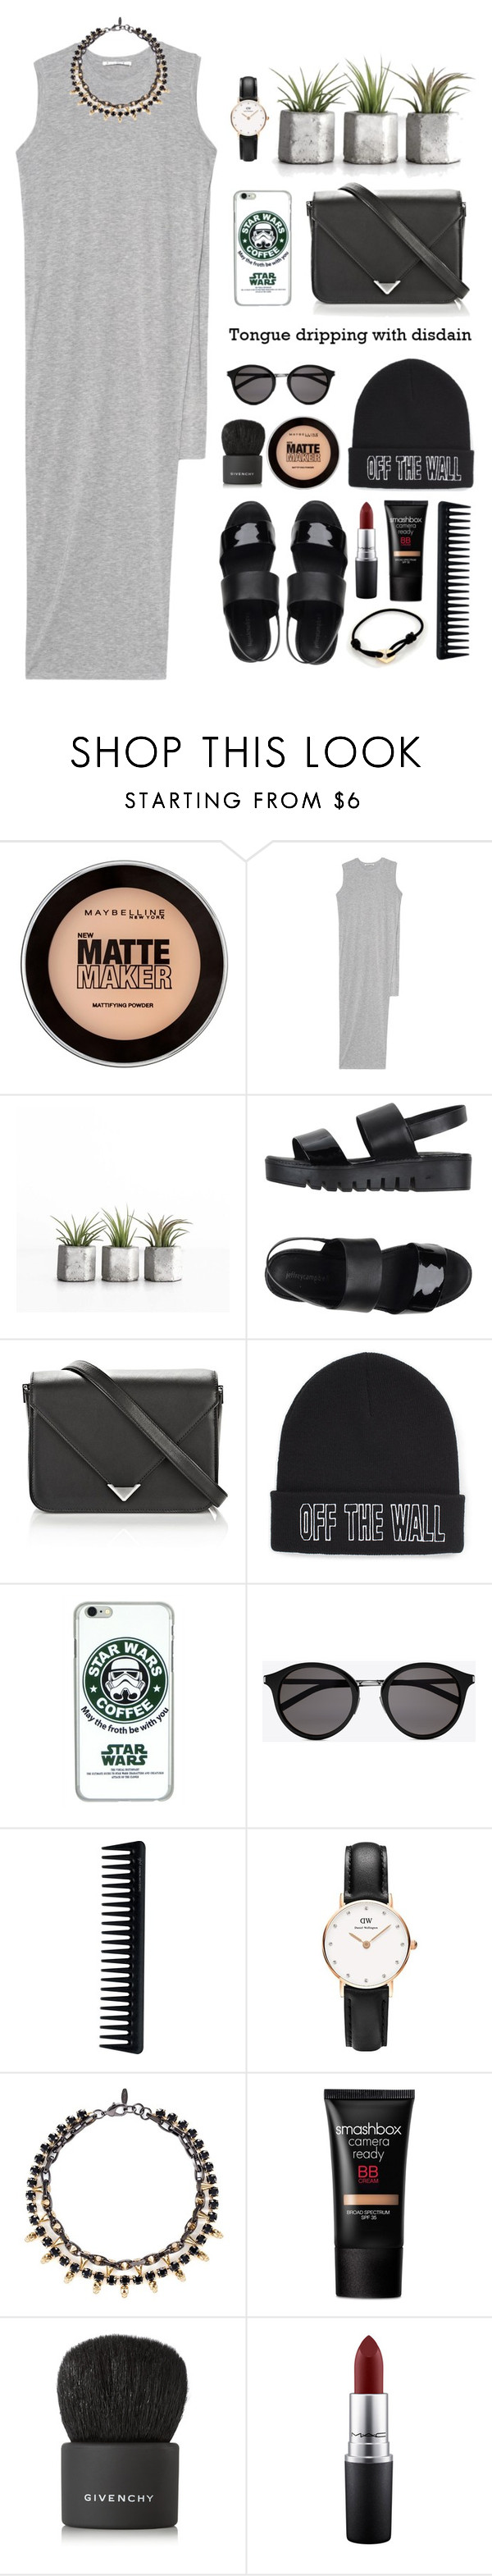 """""""So Cool, Just Gotta Wear Shades"""" by foreveryoungid ❤ liked on Polyvore featuring Maybelline, Acne Studios, Jeffrey Campbell, Alexander Wang, Vans, Yves Saint Laurent, GHD, Daniel Wellington, Joomi Lim and Smashbox"""